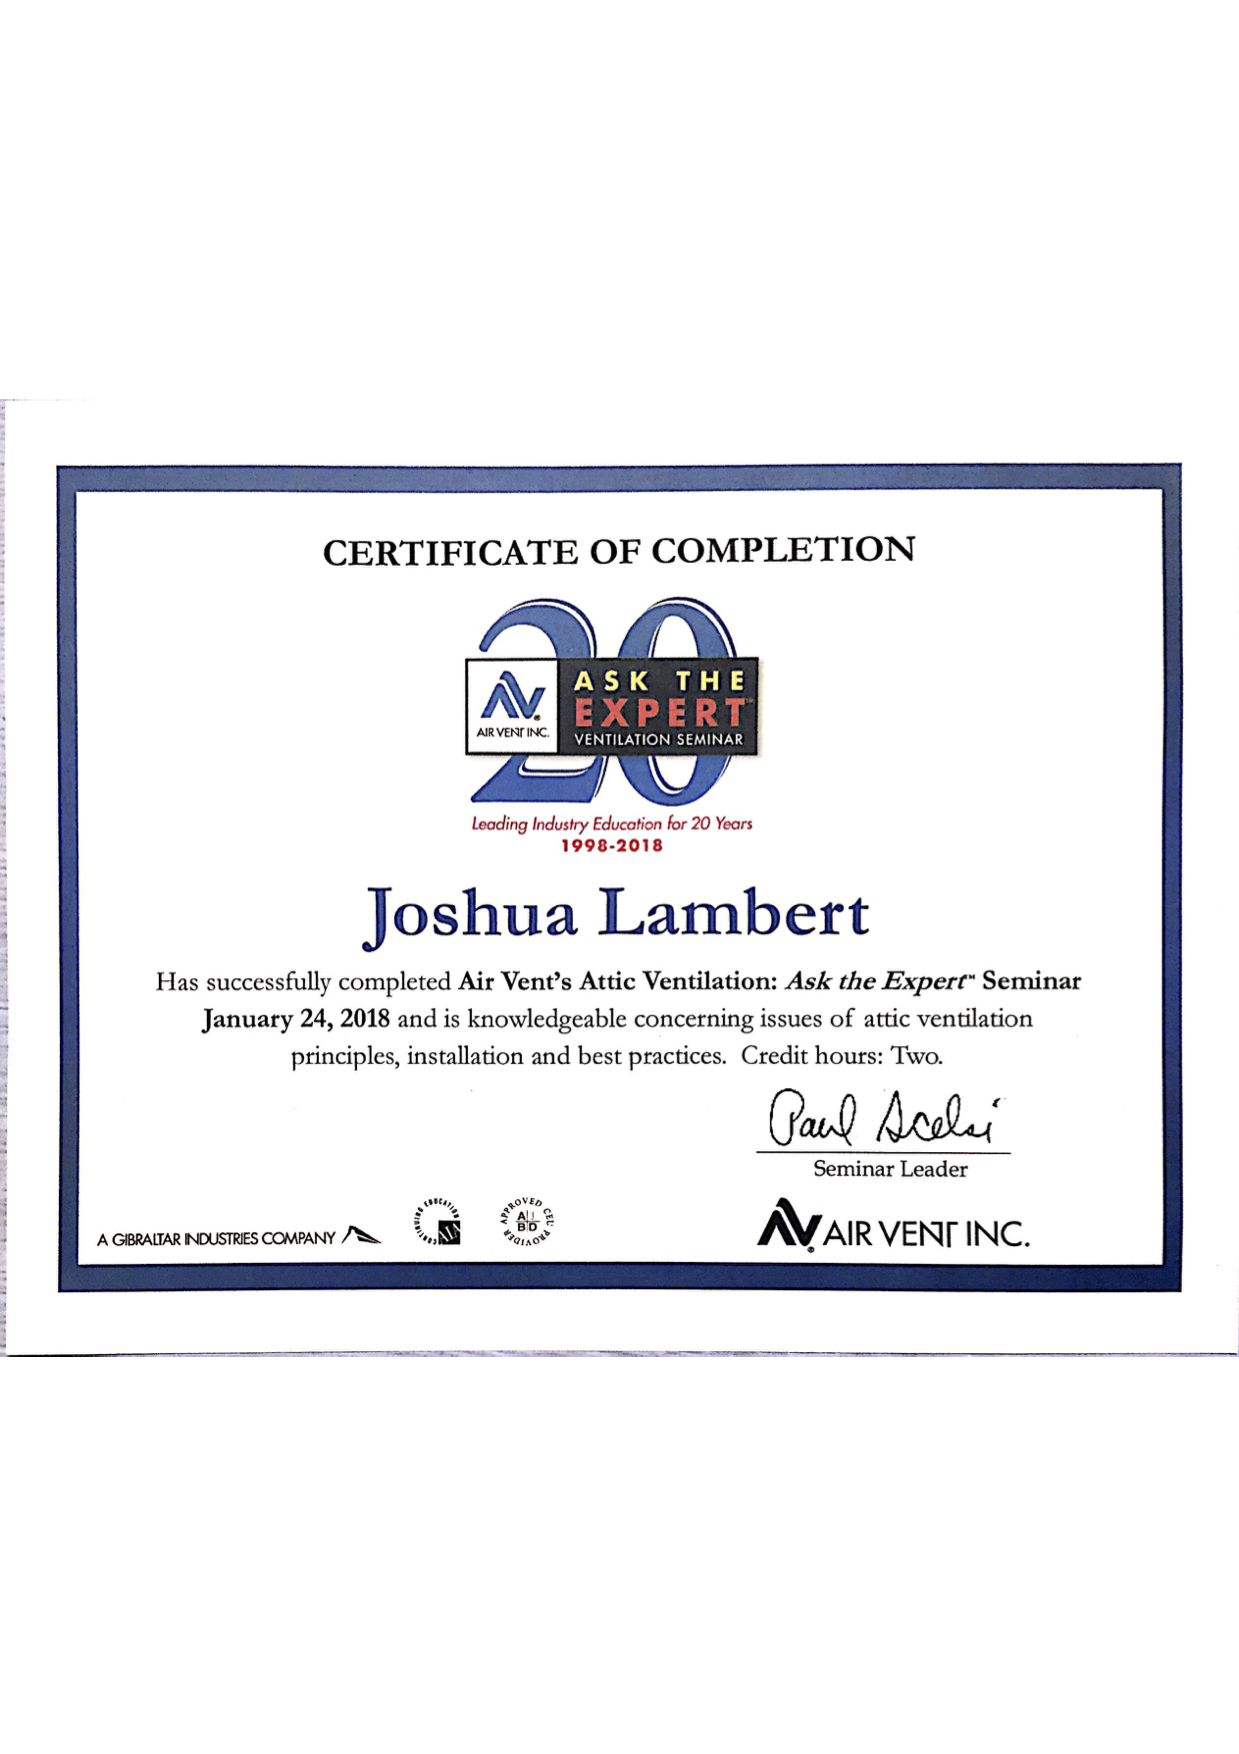 Joshua Lambert - Certified in Air Vent's Attic Ventilation